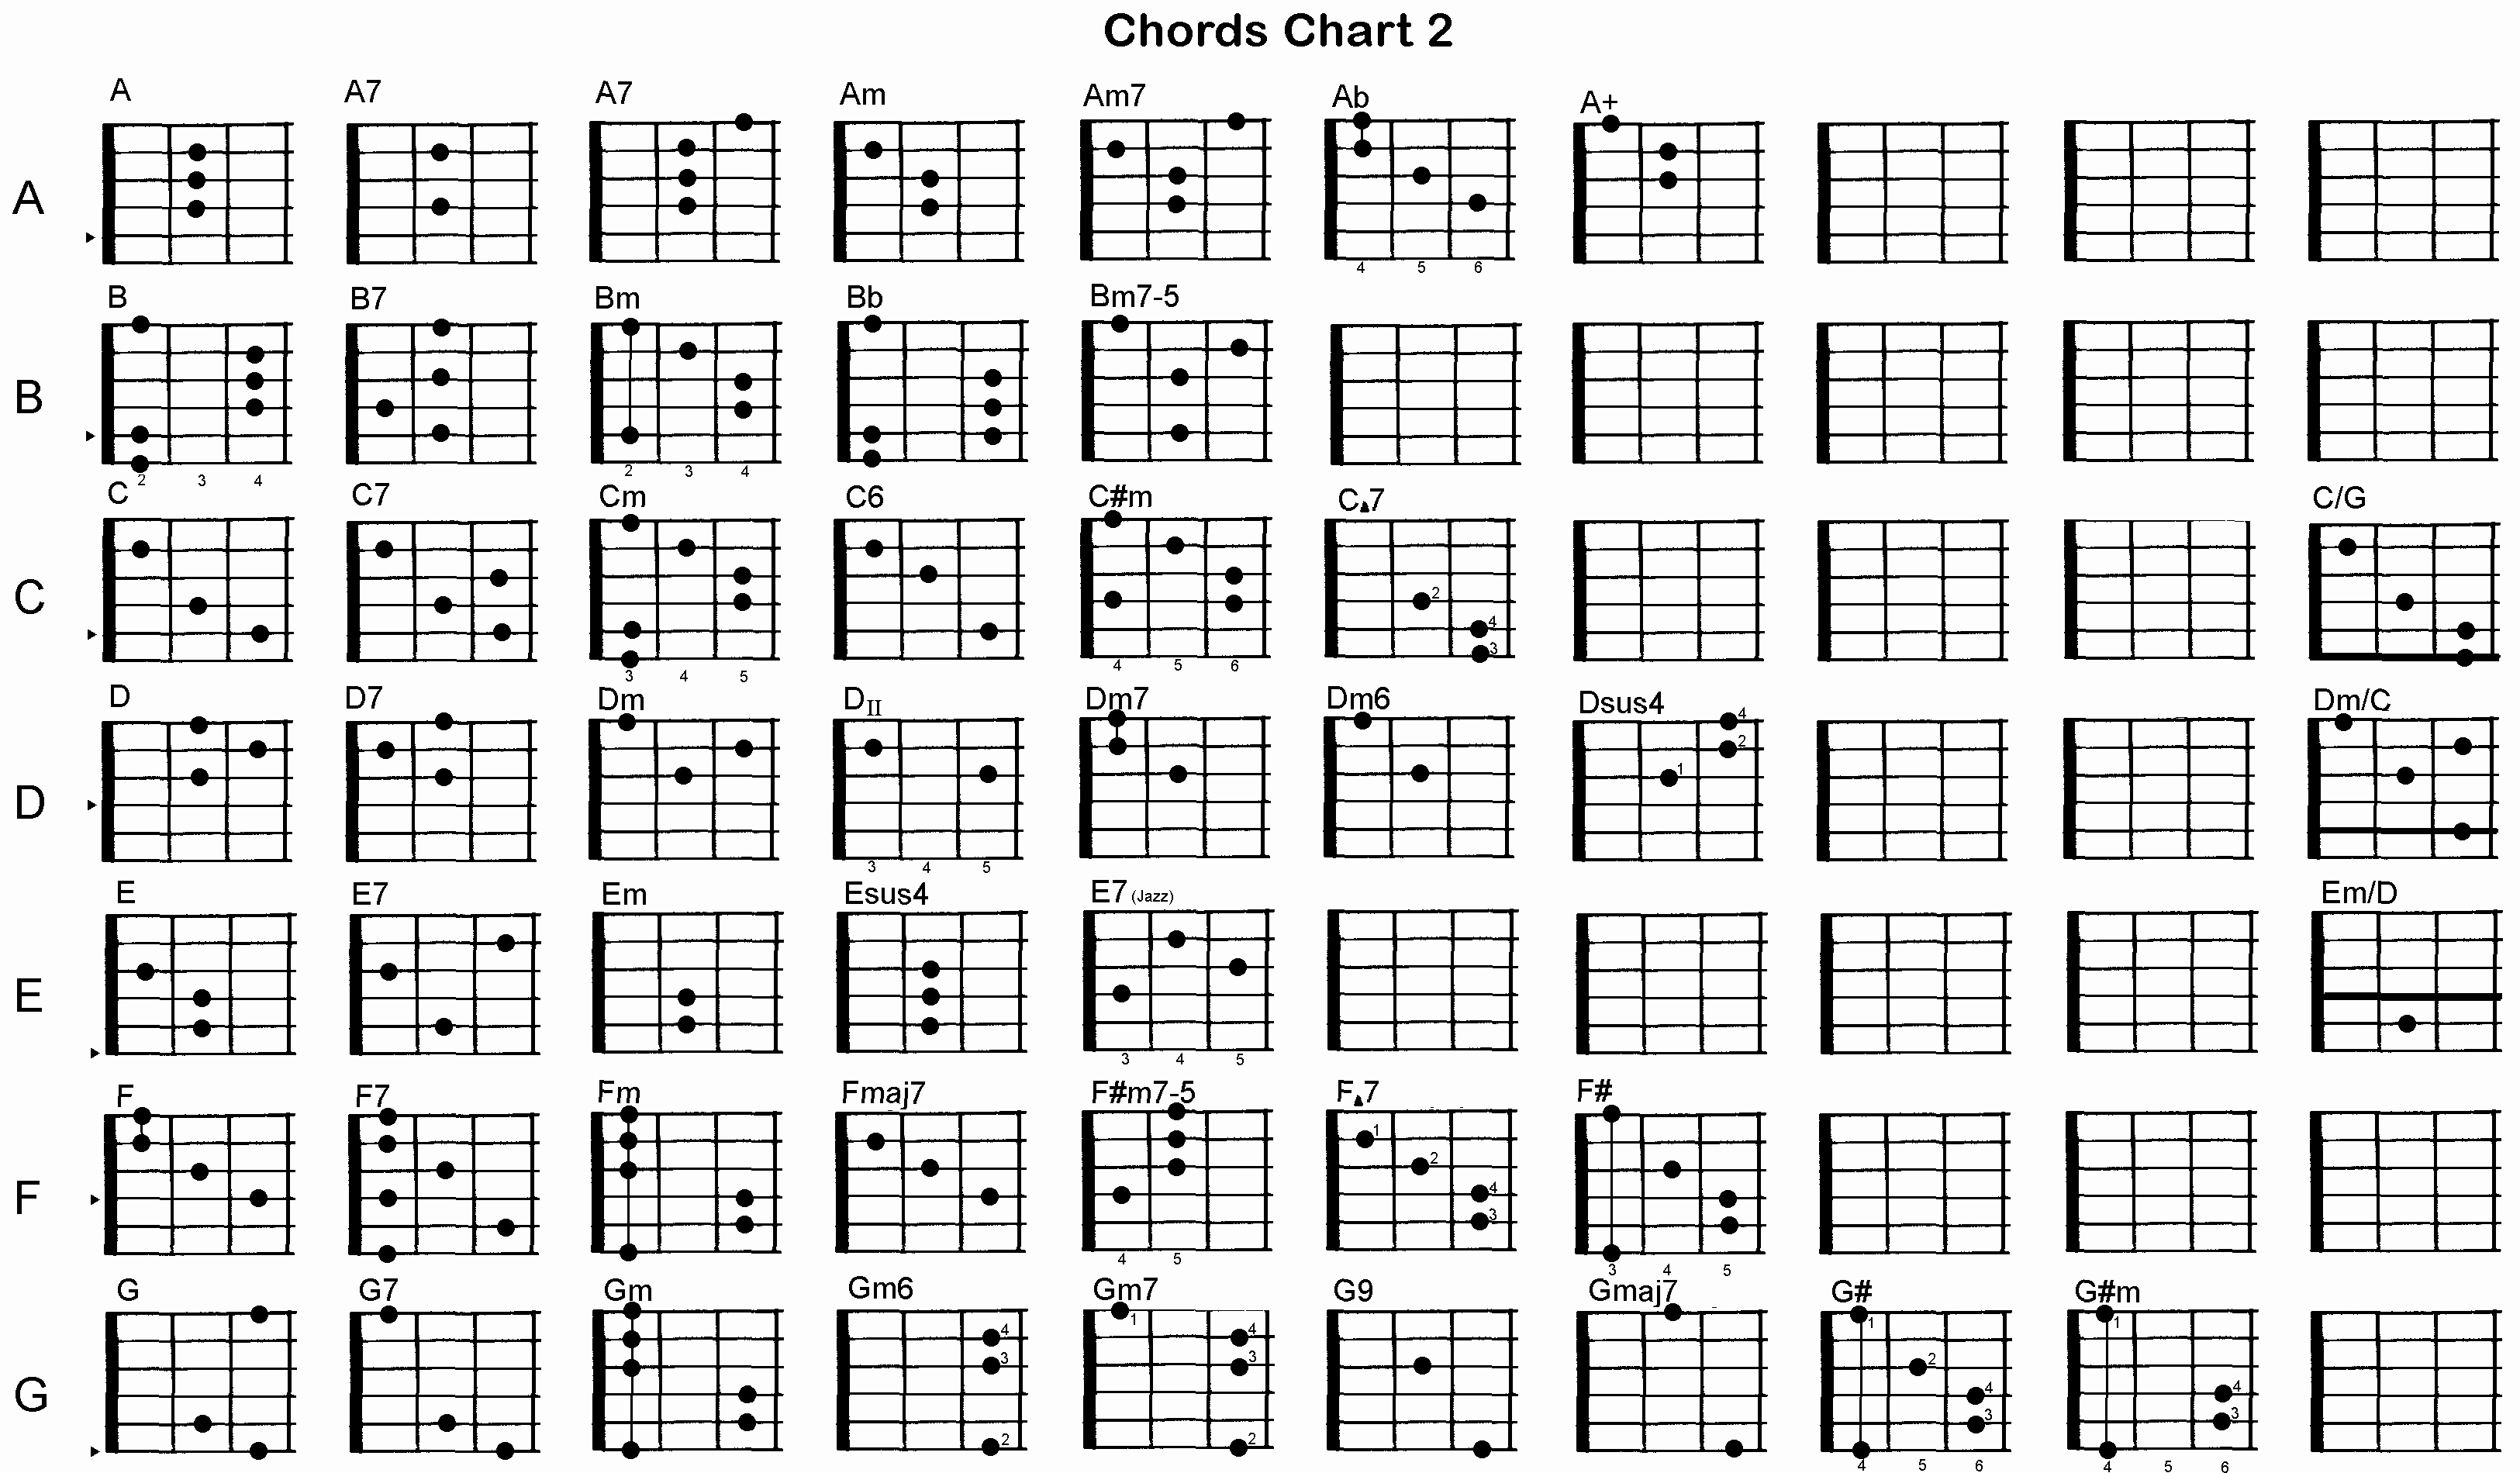 Dm7 Guitar Chord Precise Lefty Guitar Chord Chart Notes Of The Lefty Guitar Fretboard